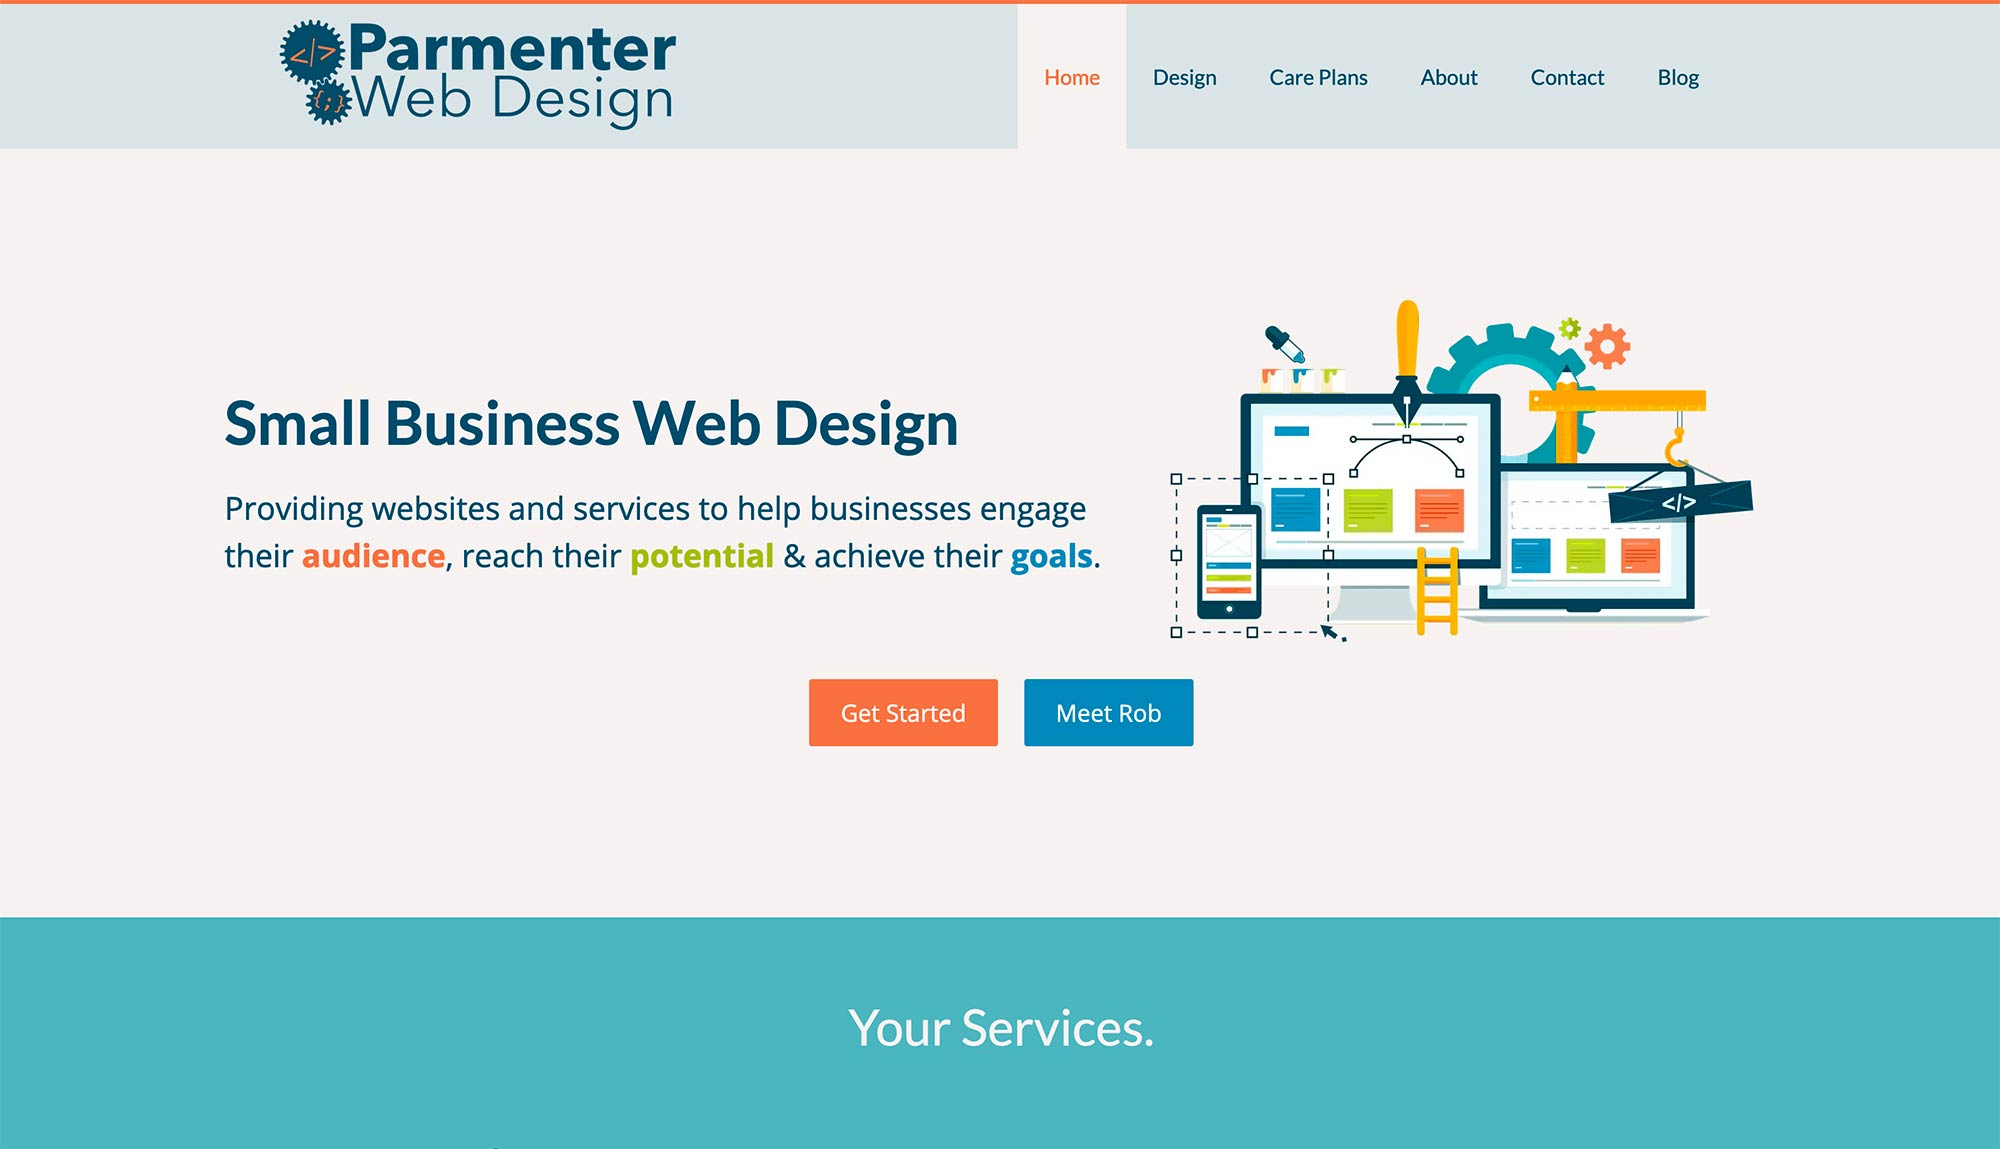 Paramenter Web Design